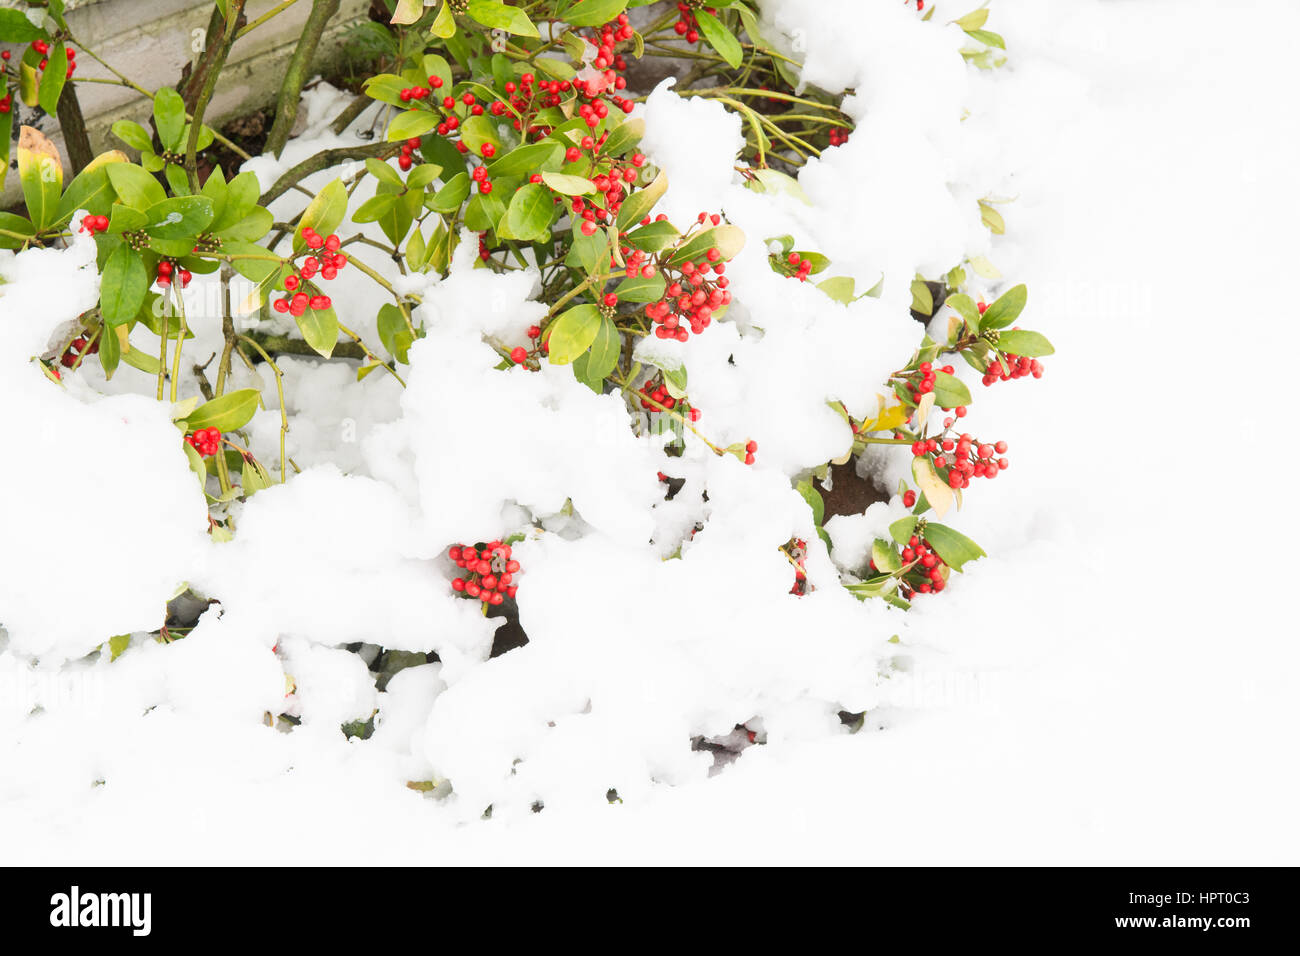 garden shrub Skimmia Japonica covered and flattened by deep snow - Stock Image